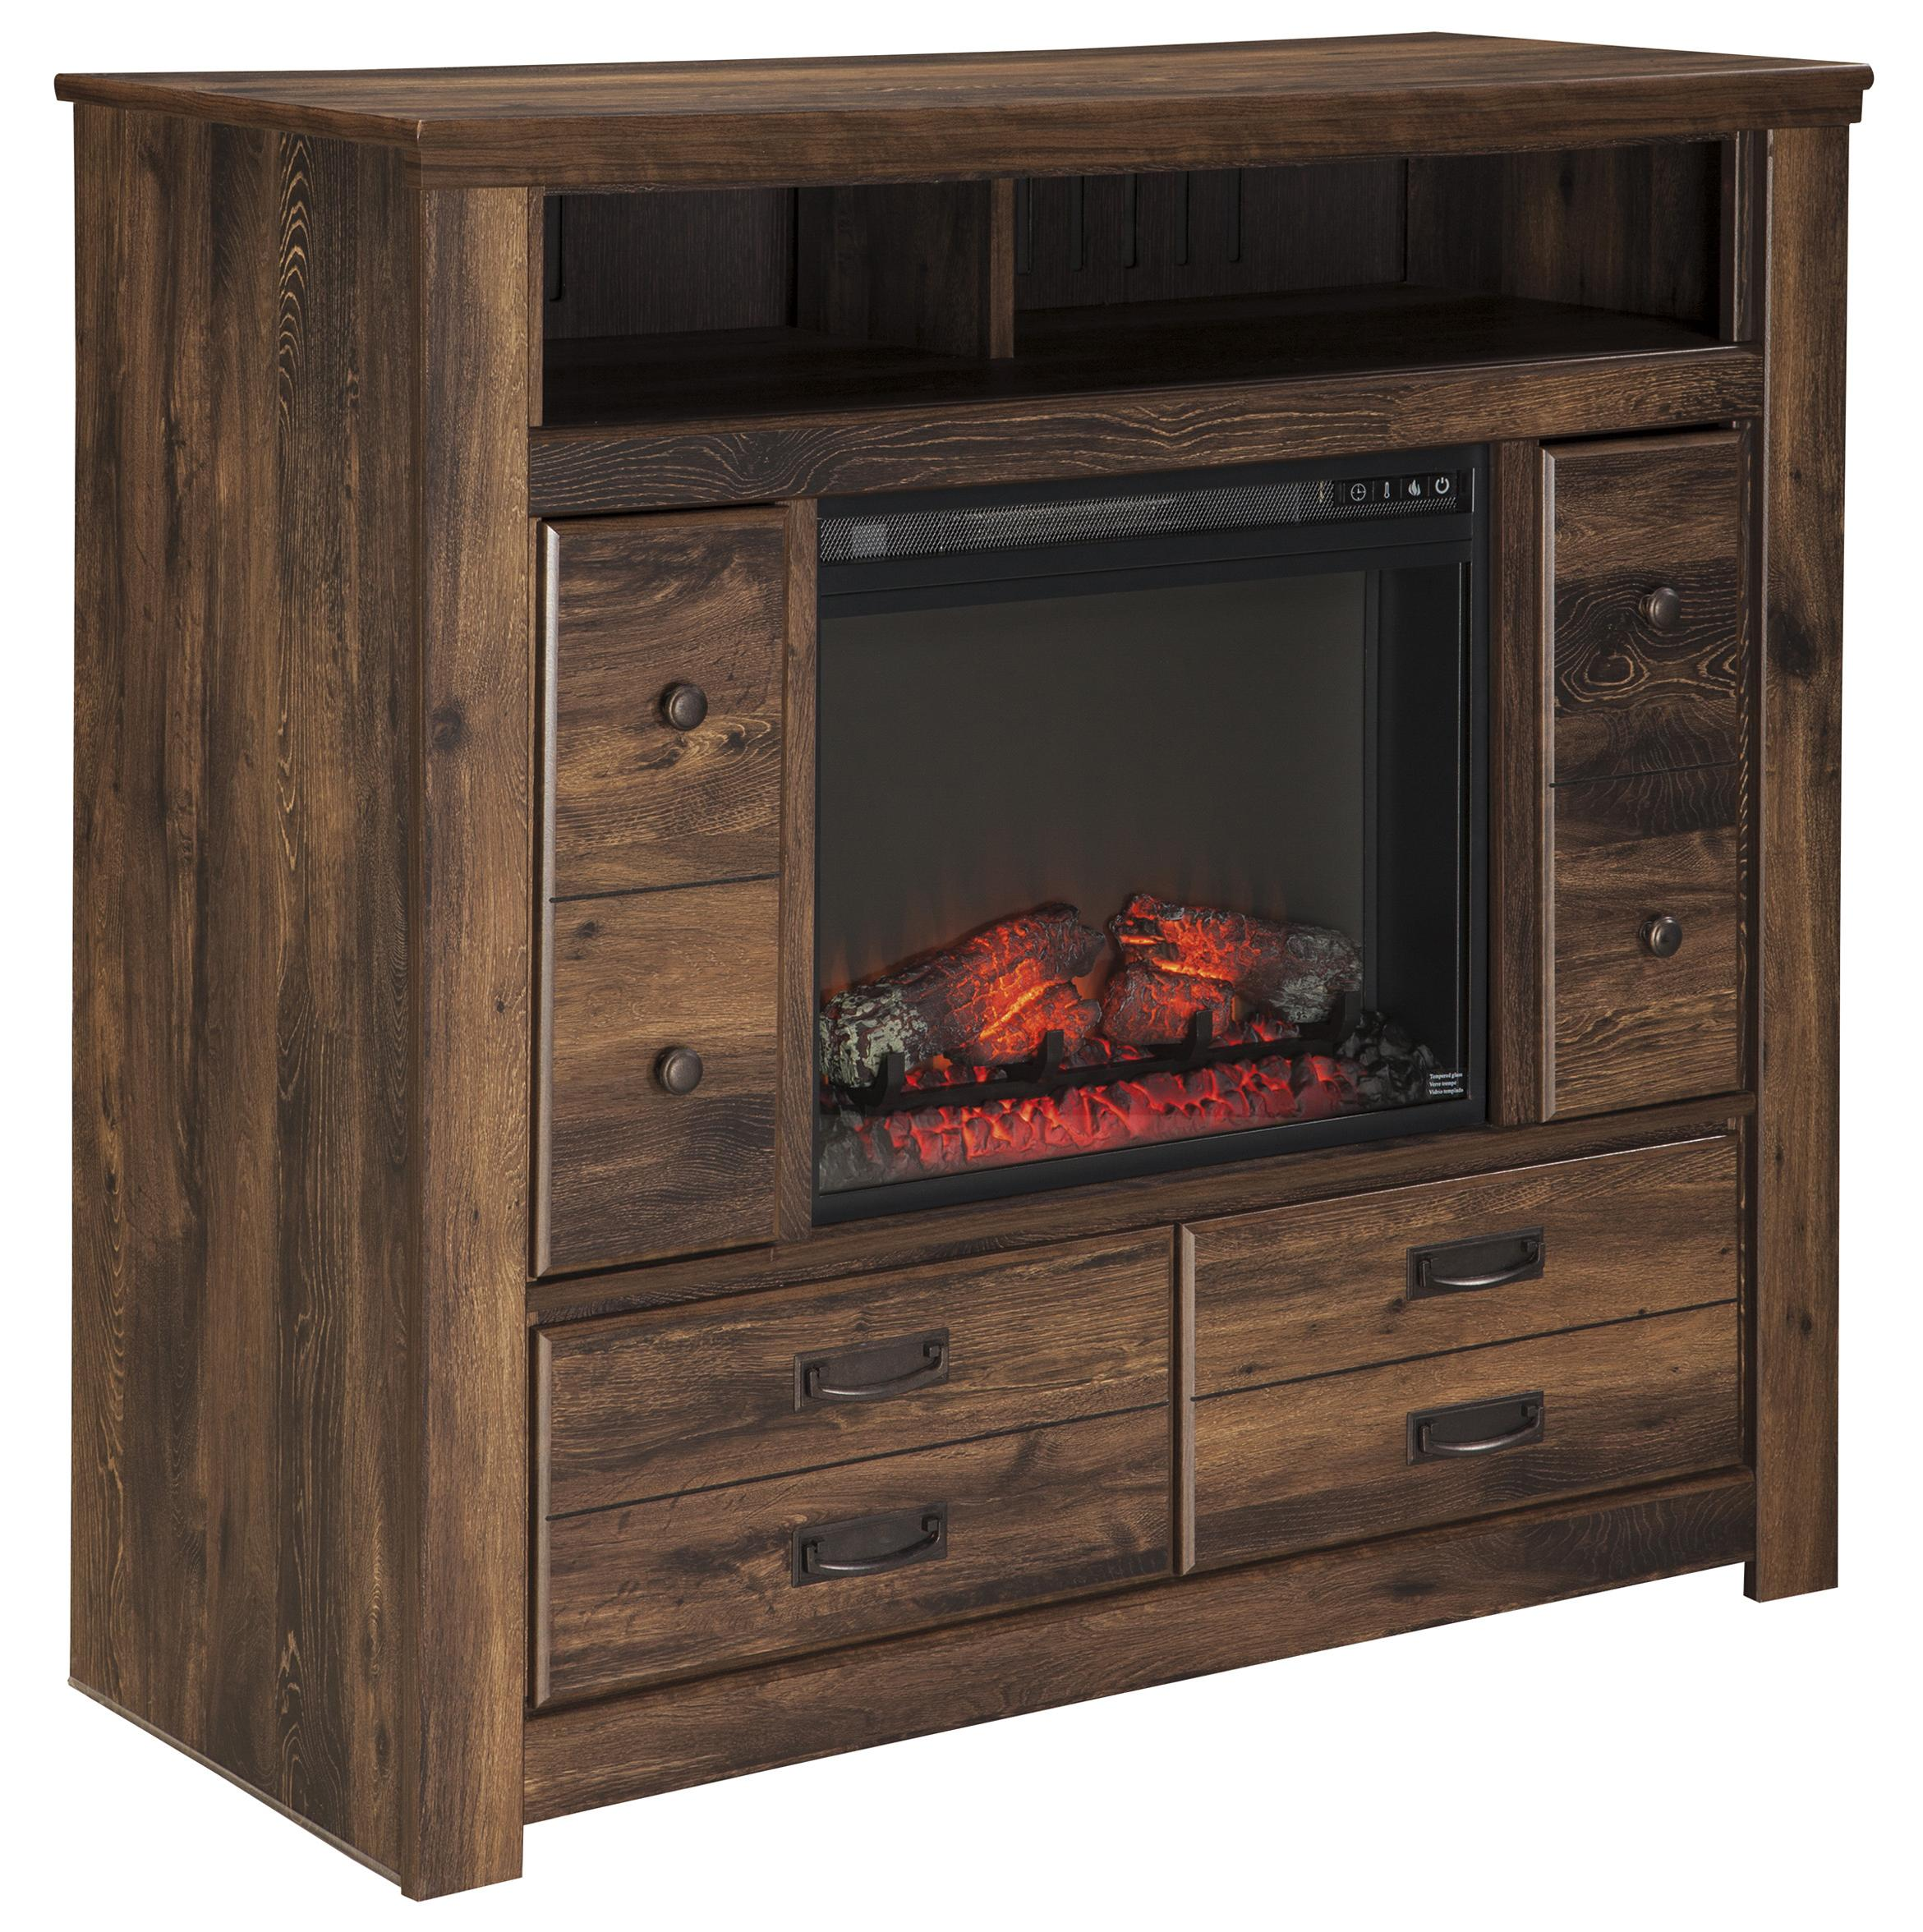 Media Chest with Fireplace Insert